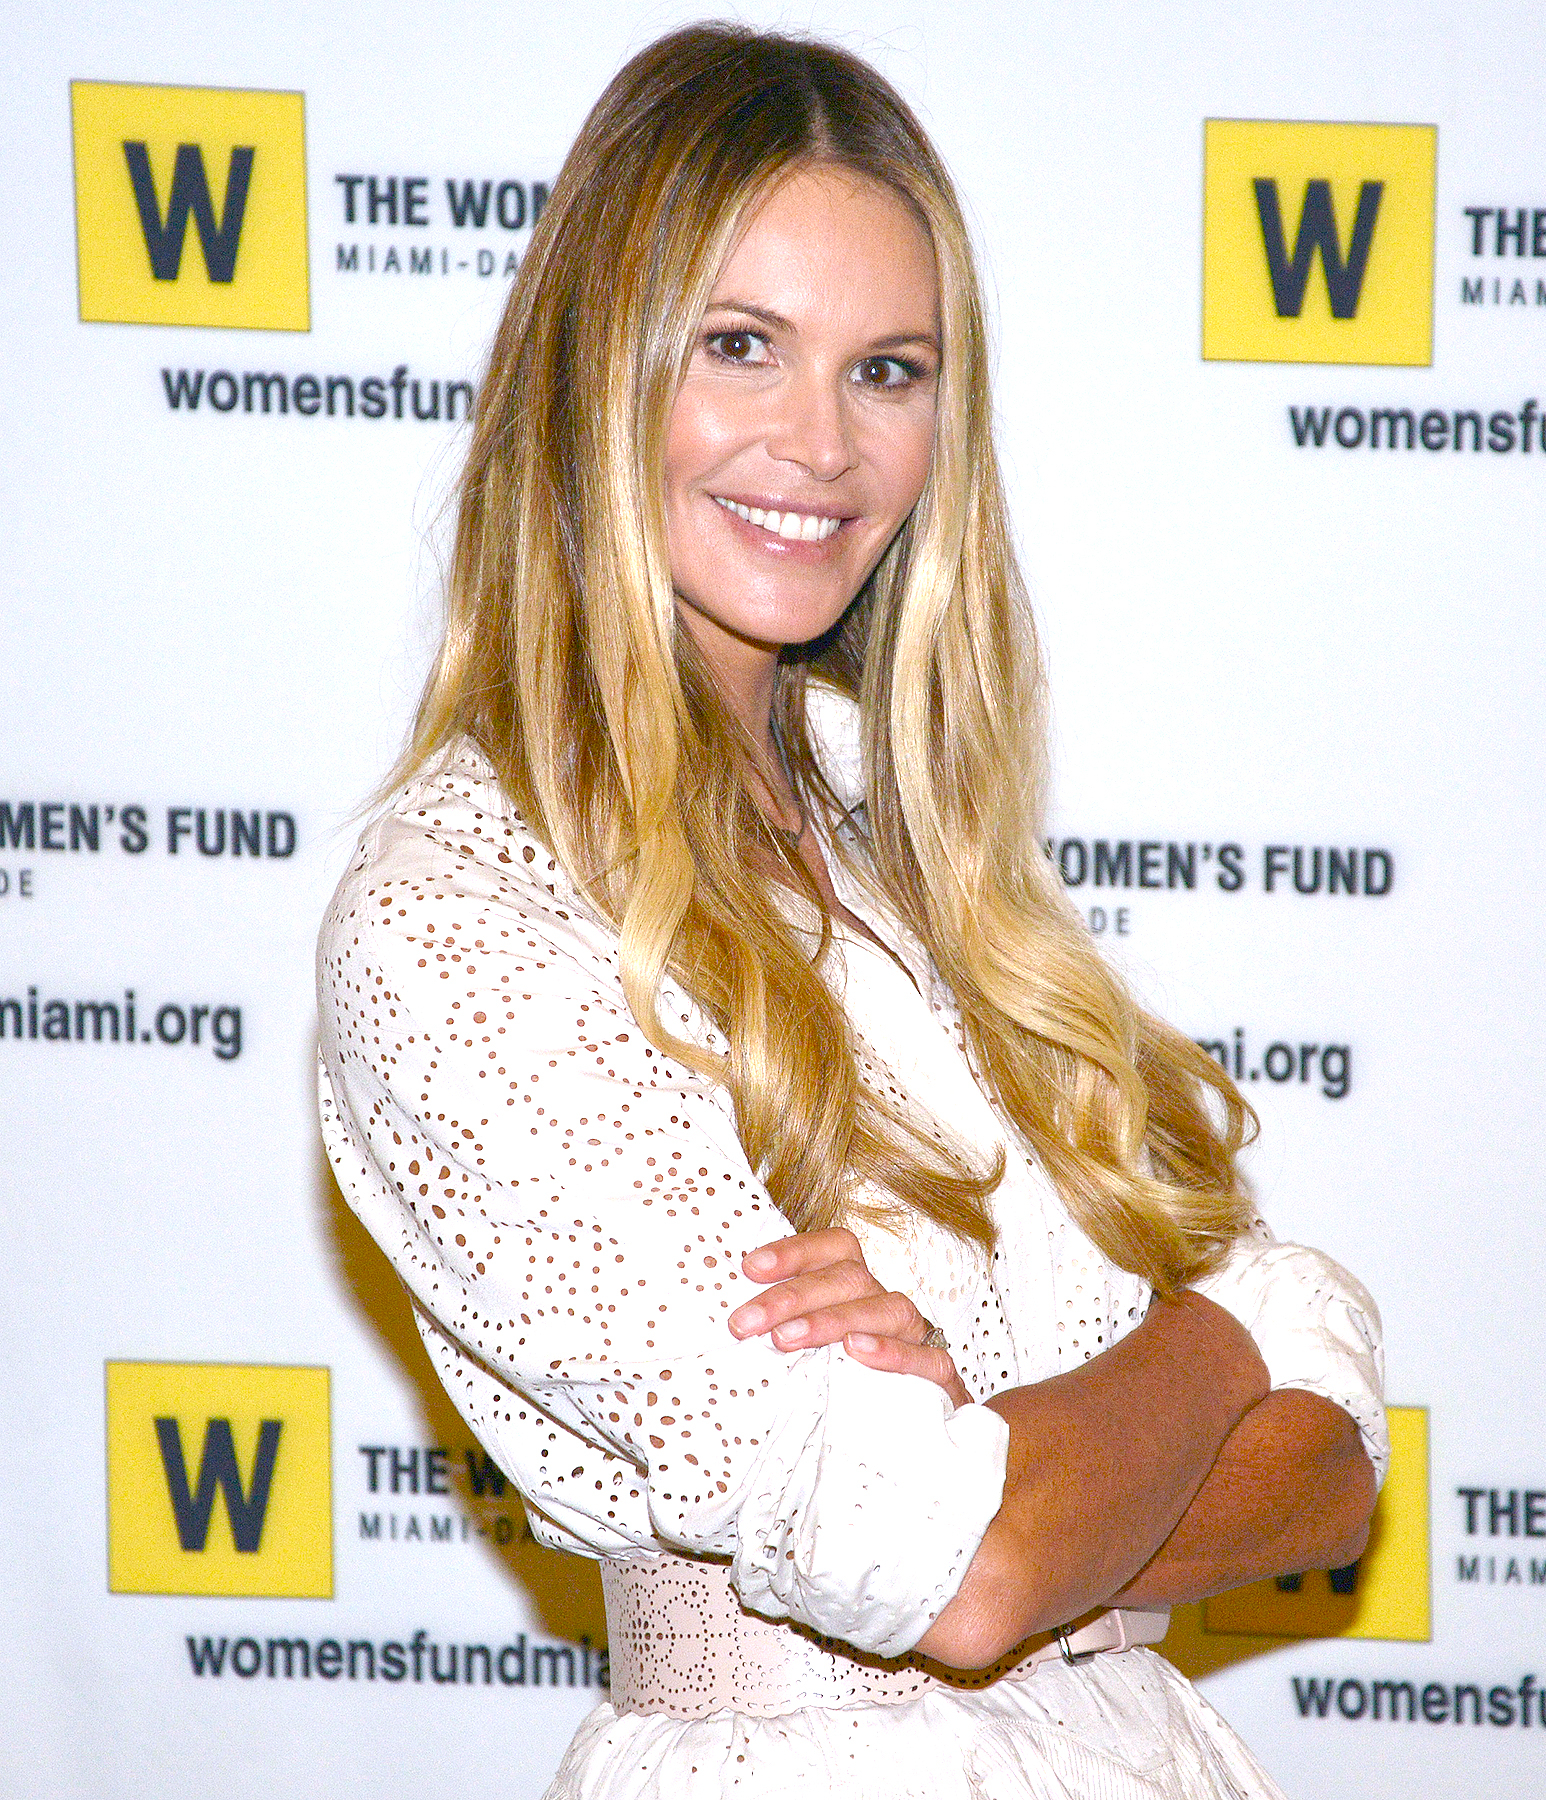 Elle Macpherson hosts the 2015 Power of the Purse Luncheon to benefit the Women's Fund on March 13, 2015, in Miami.